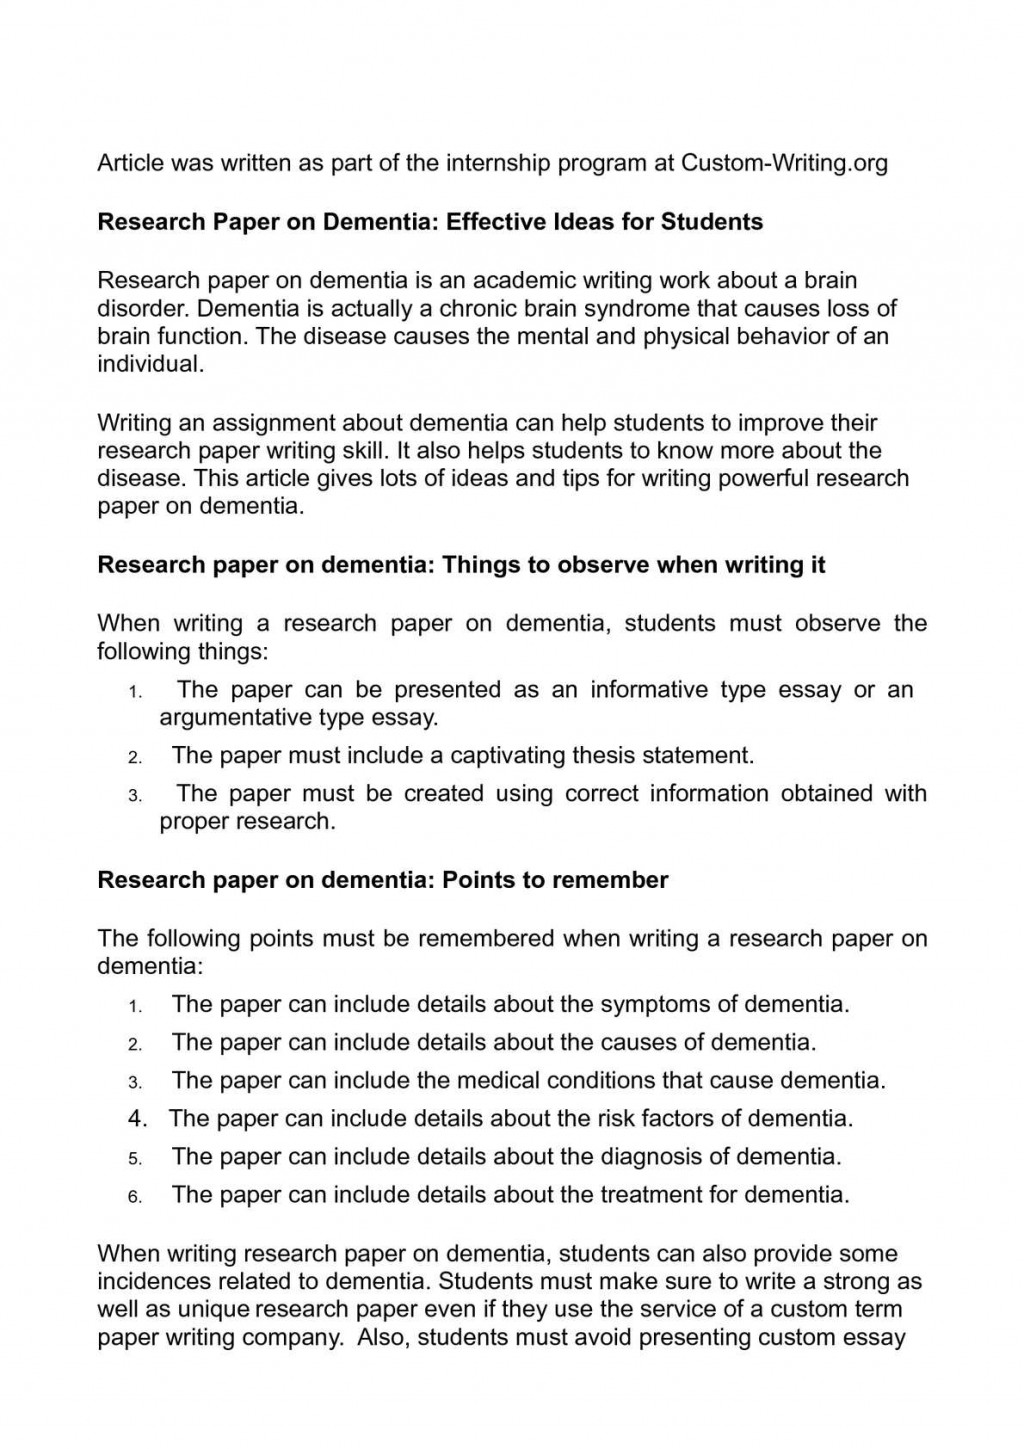 001 P1 Correct Order Of Research Wonderful A Paper Sequence Steps For Writing Large